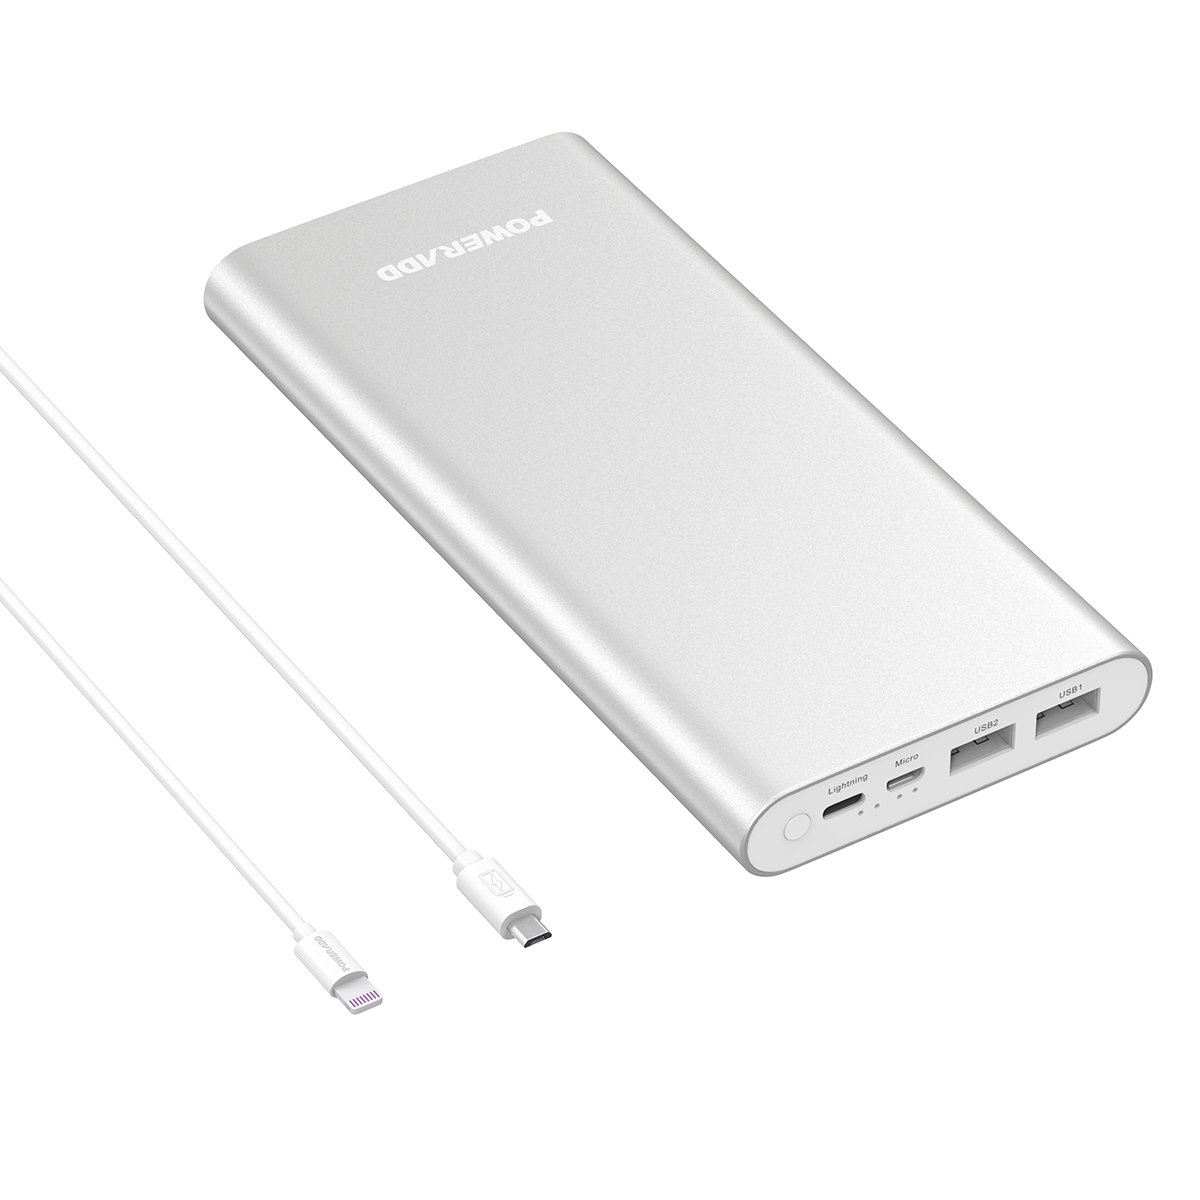 Poweradd Pliot 4 Gs Plus 20000m Ah External Battery Pack Lightning & Micro Input Power Bank 3.6 A Fast Charger For I Phone, I Pad, Samsung, Lg And More   Silver (Apple & Micro Cable Included) by Poweradd